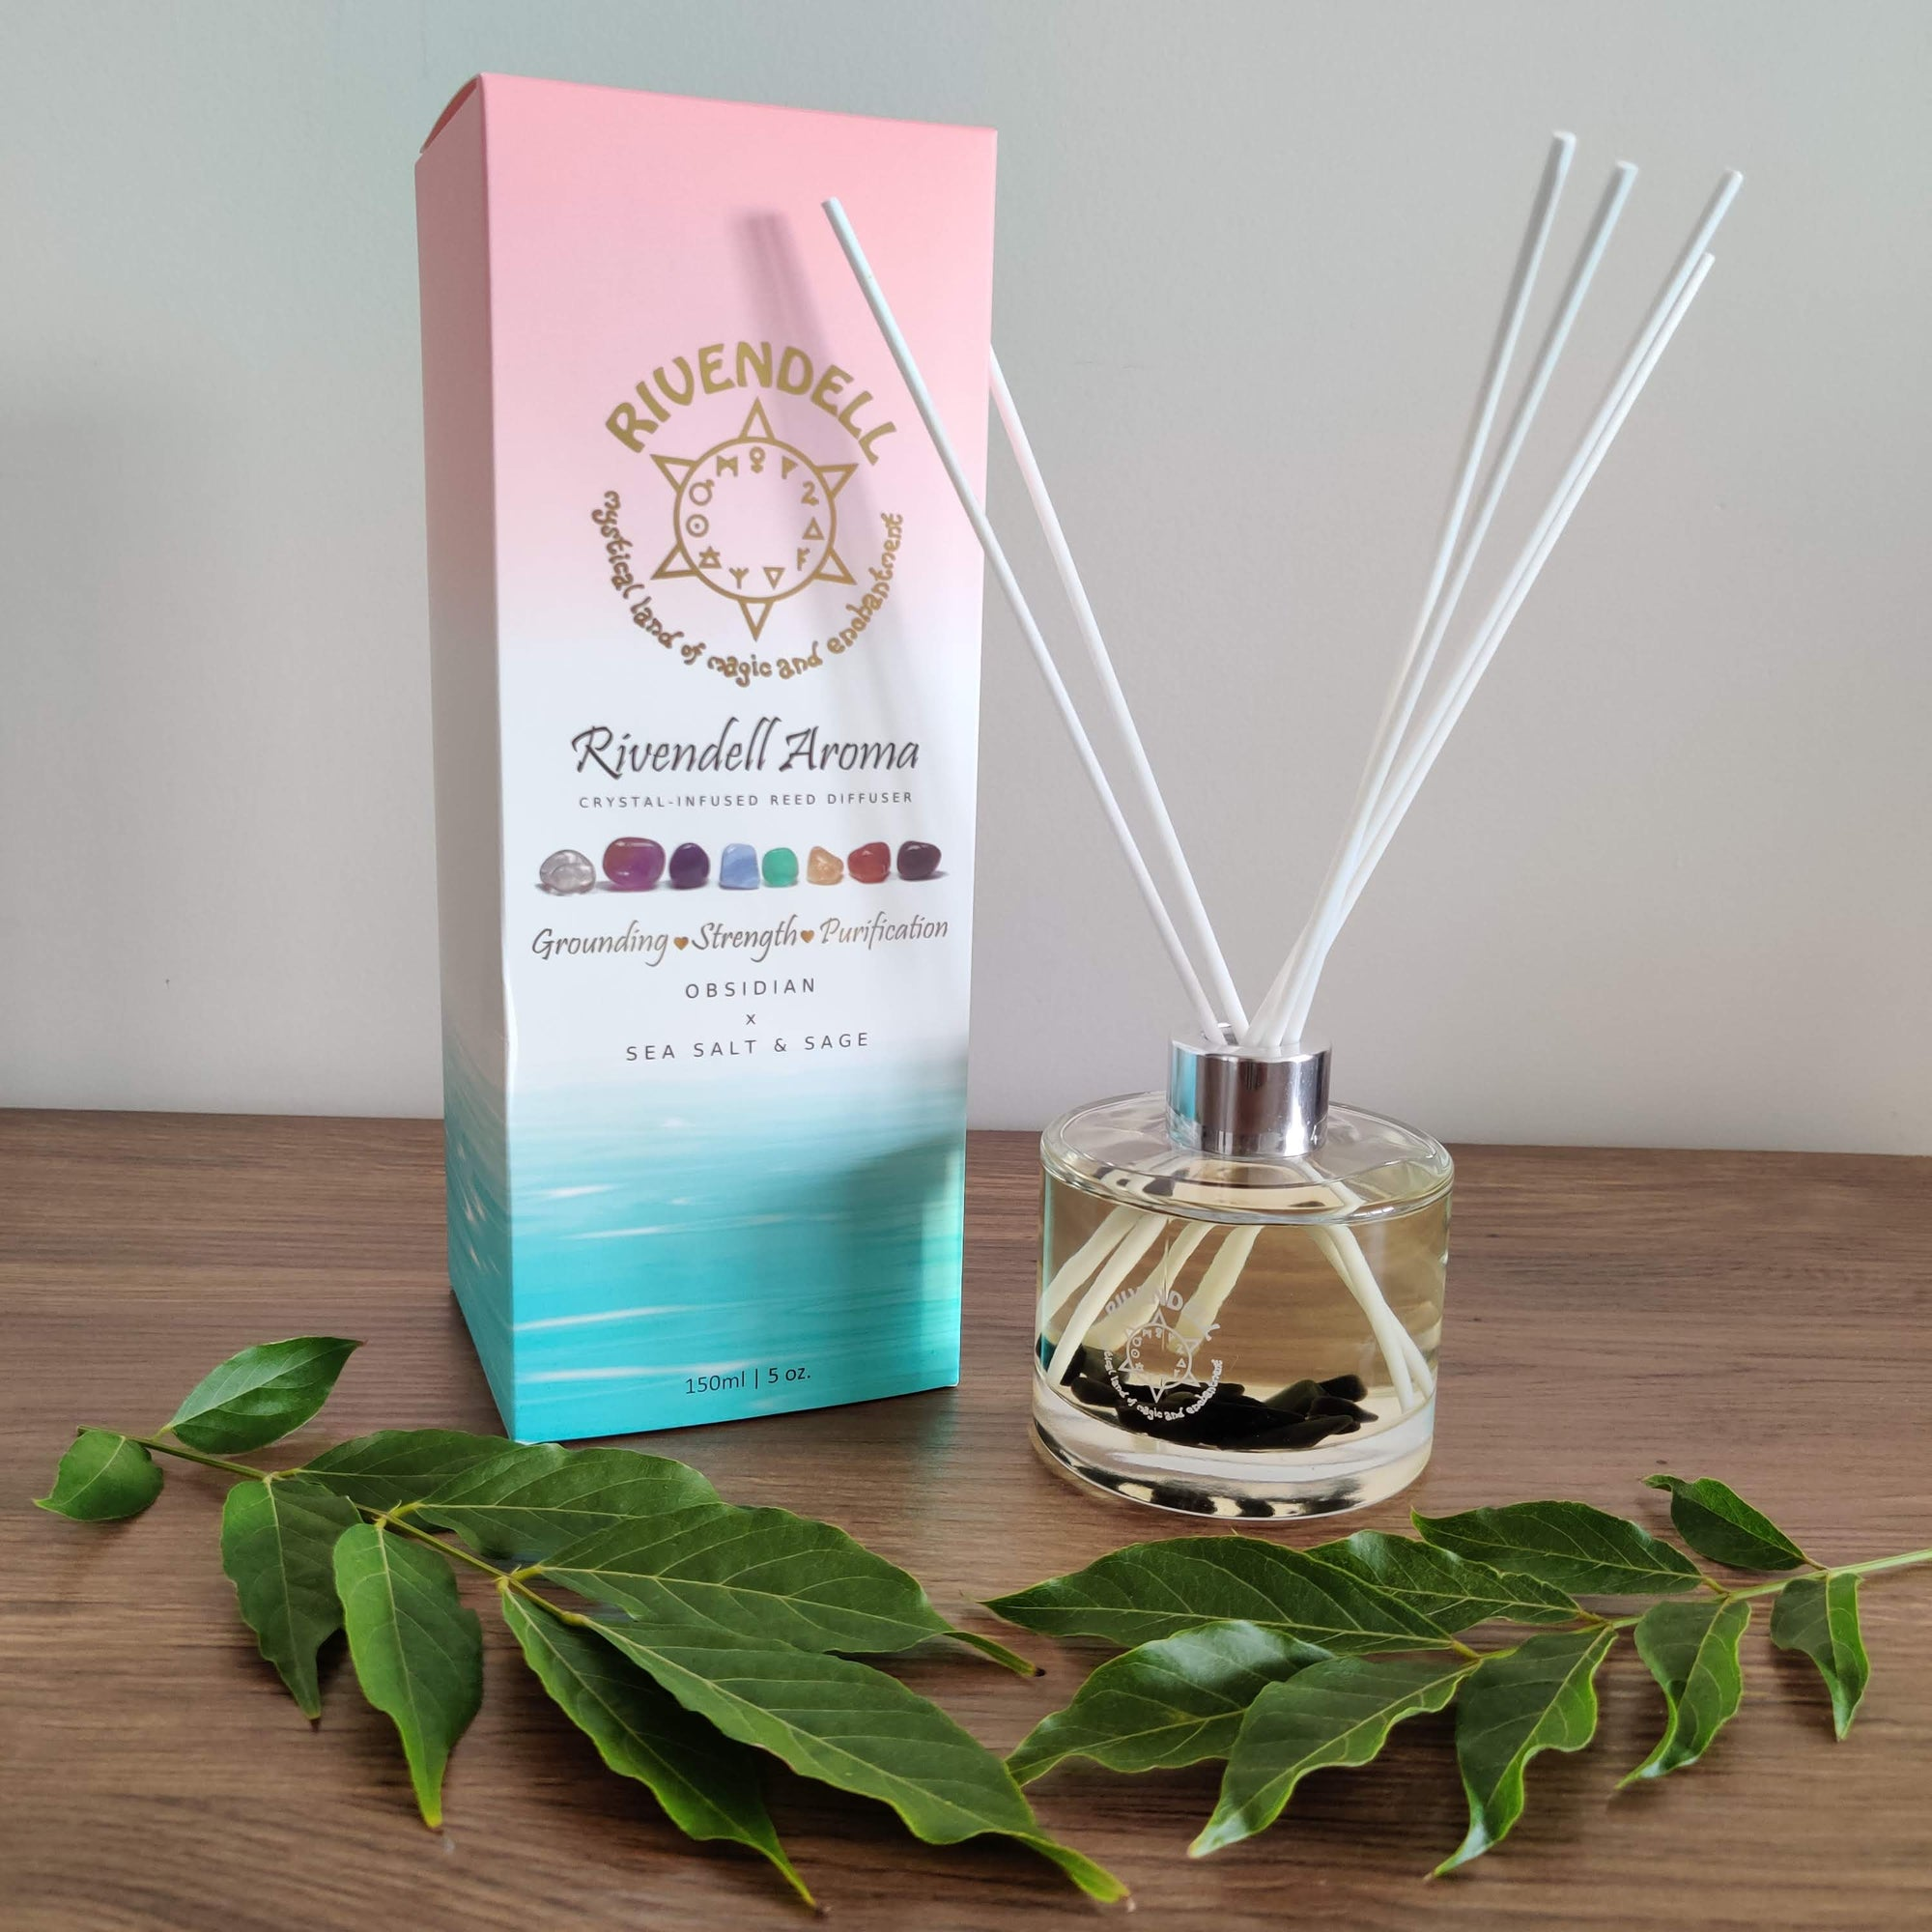 Rivendell Aroma: Obsidian x Sea Salt and Sage Crystal-Infused Reed Diffuser - Rivendell Shop